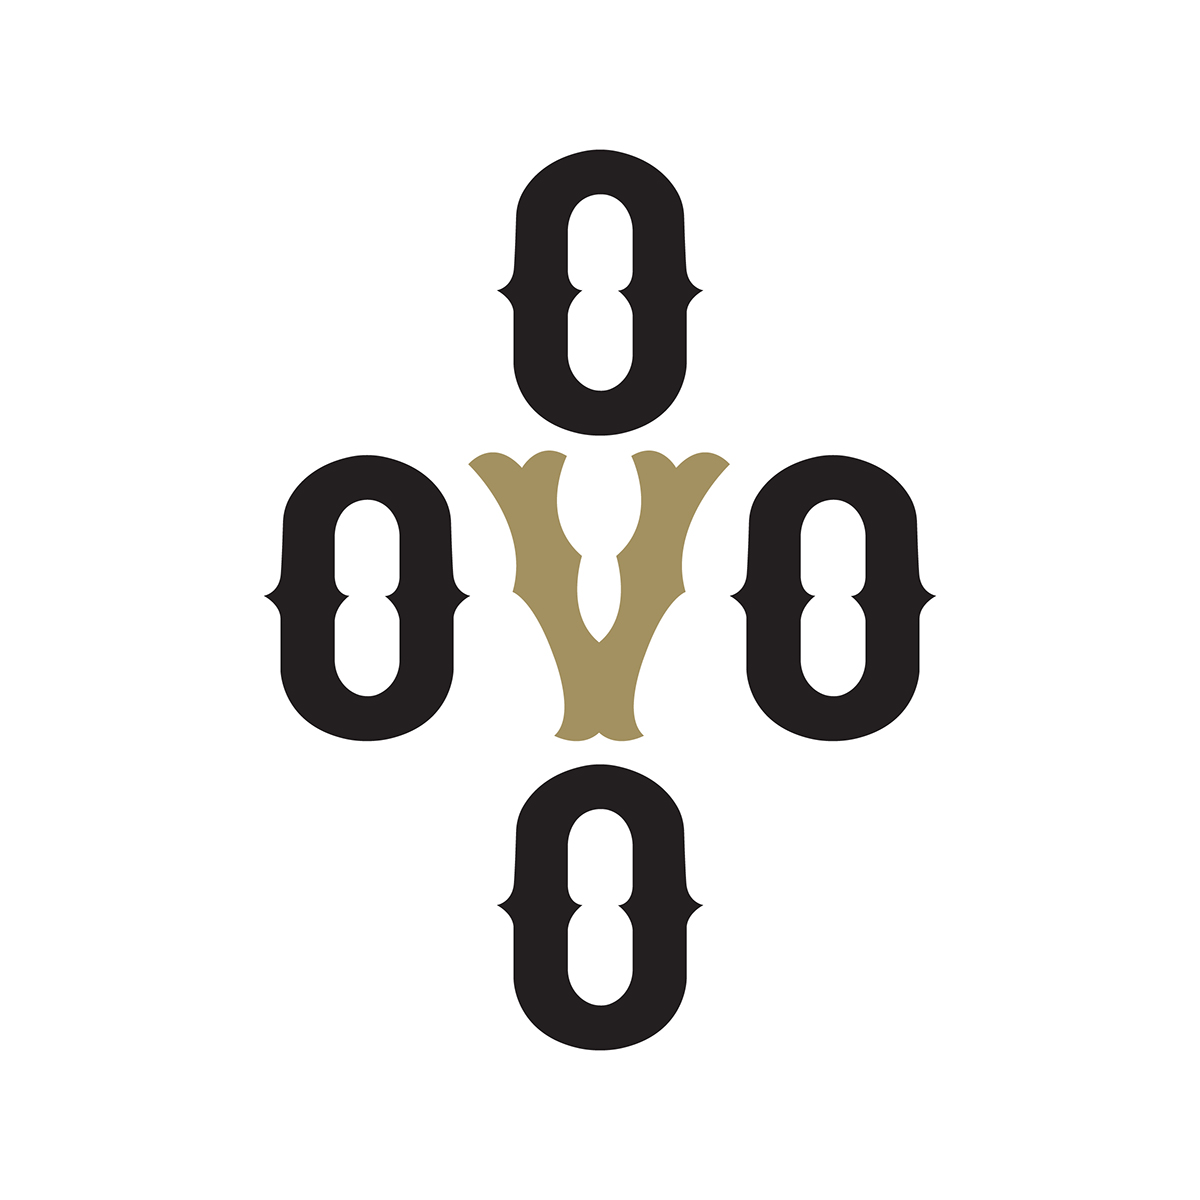 OVO Sound on Behance